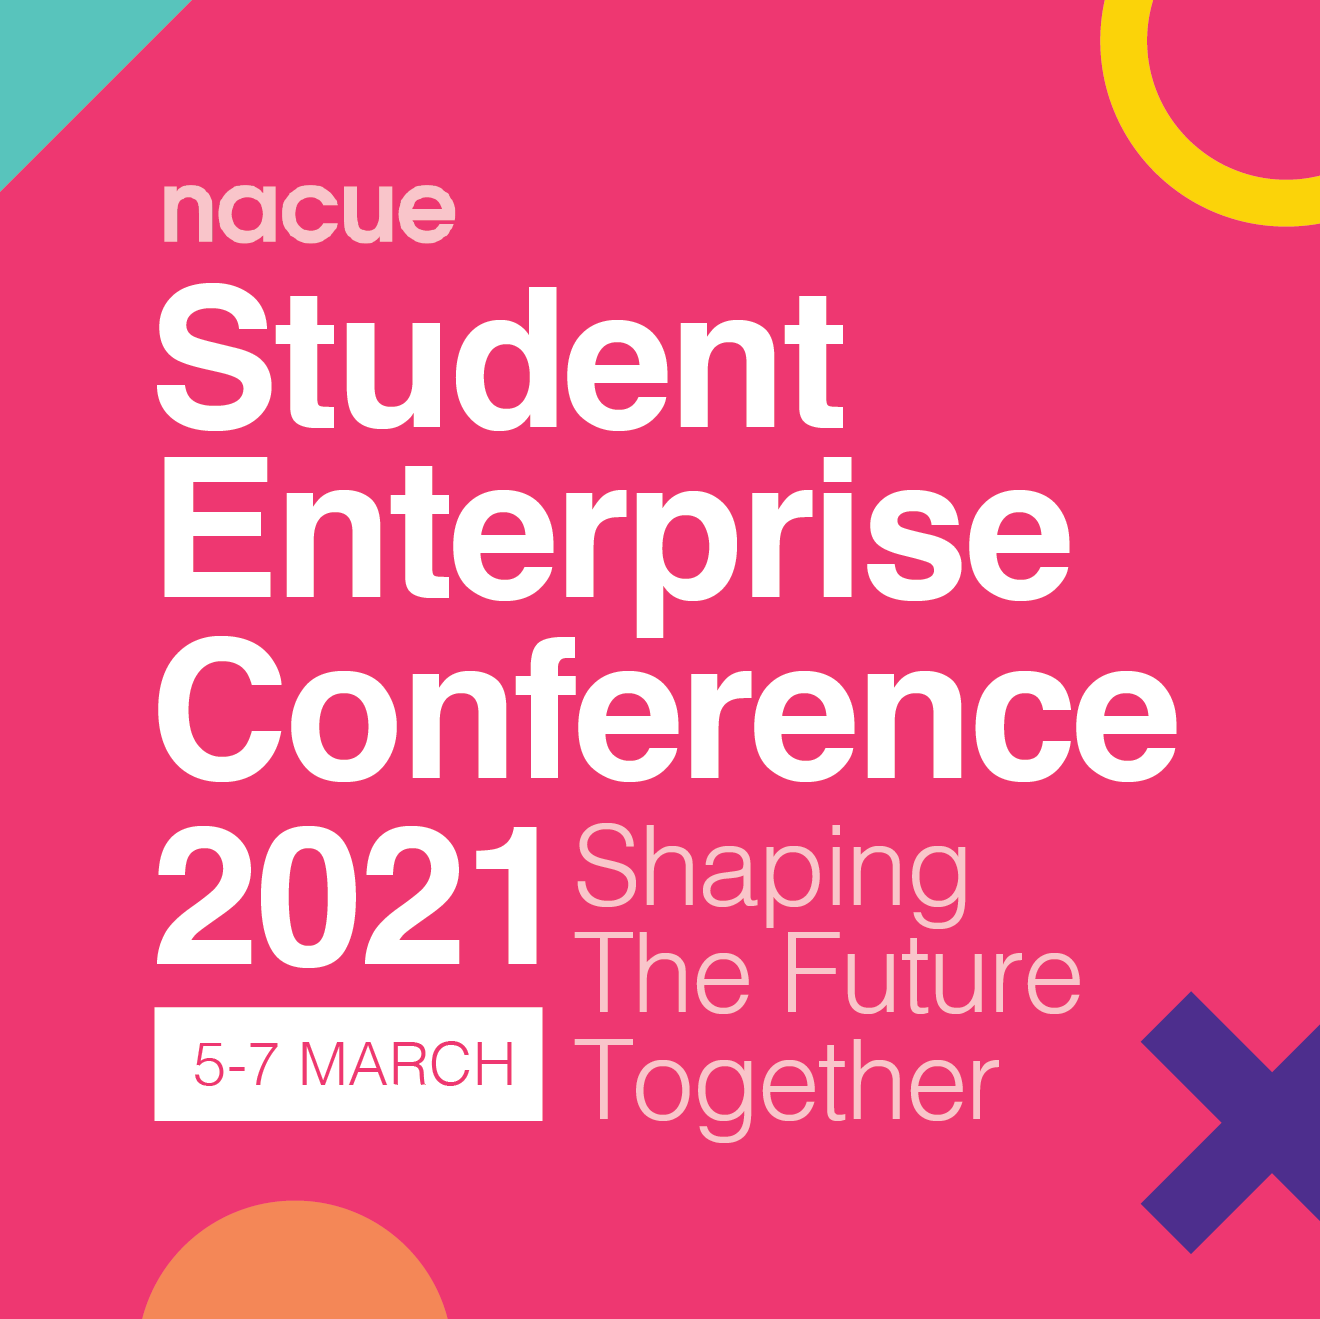 The Student Enterprise Conference 2021